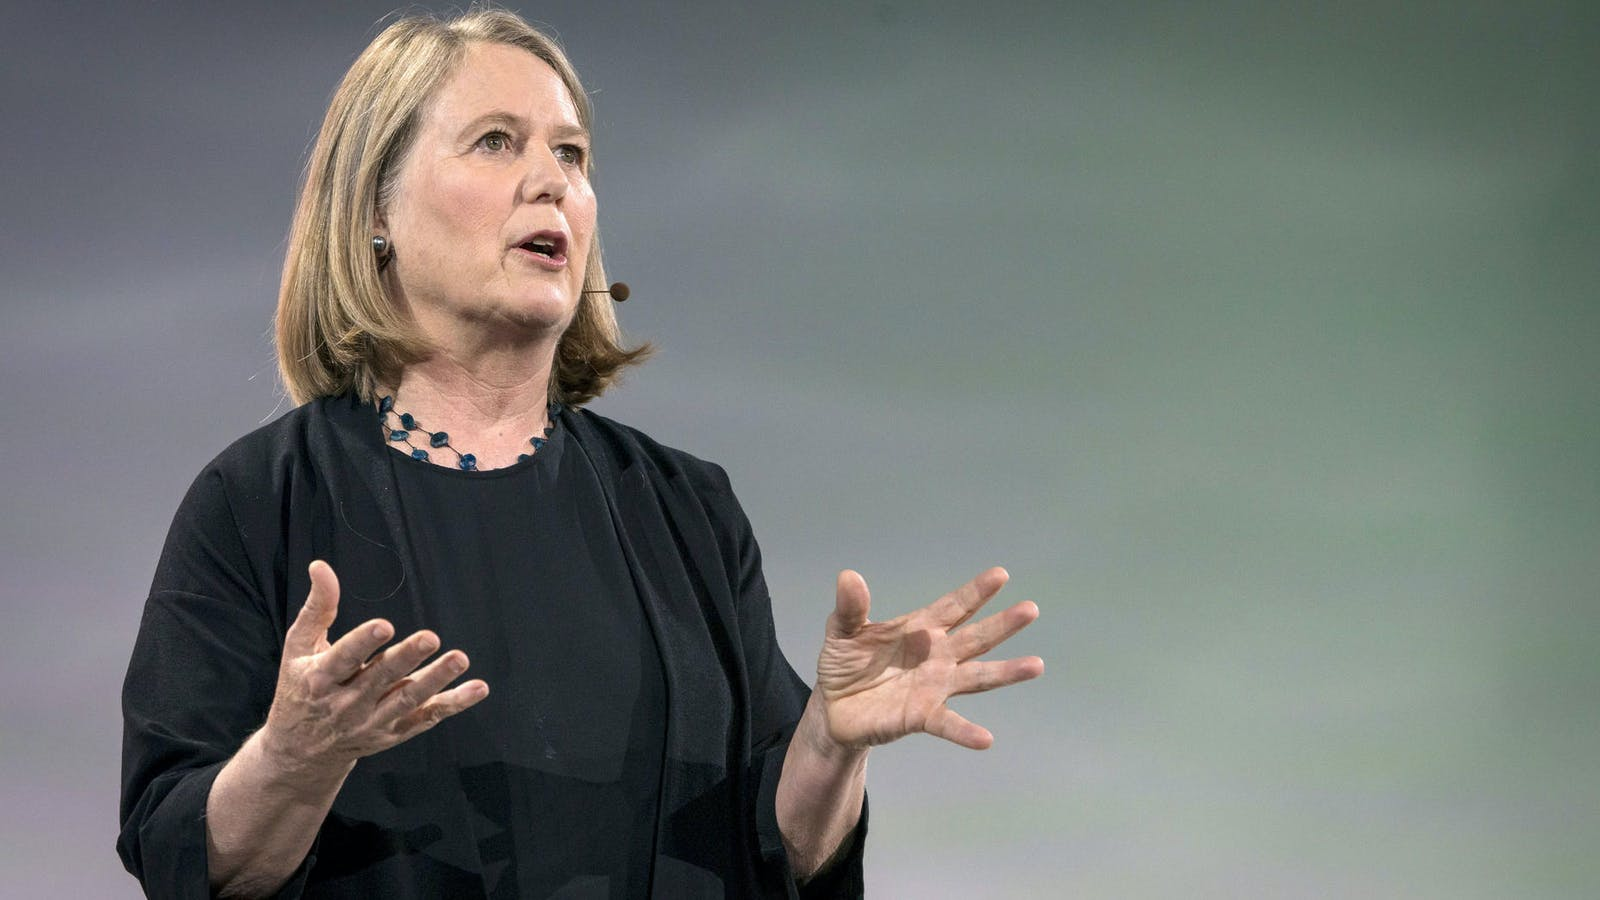 Google Cloud CEO Diane Greene on Tuesday at a company event in San Francisco. Photo: Bloomberg